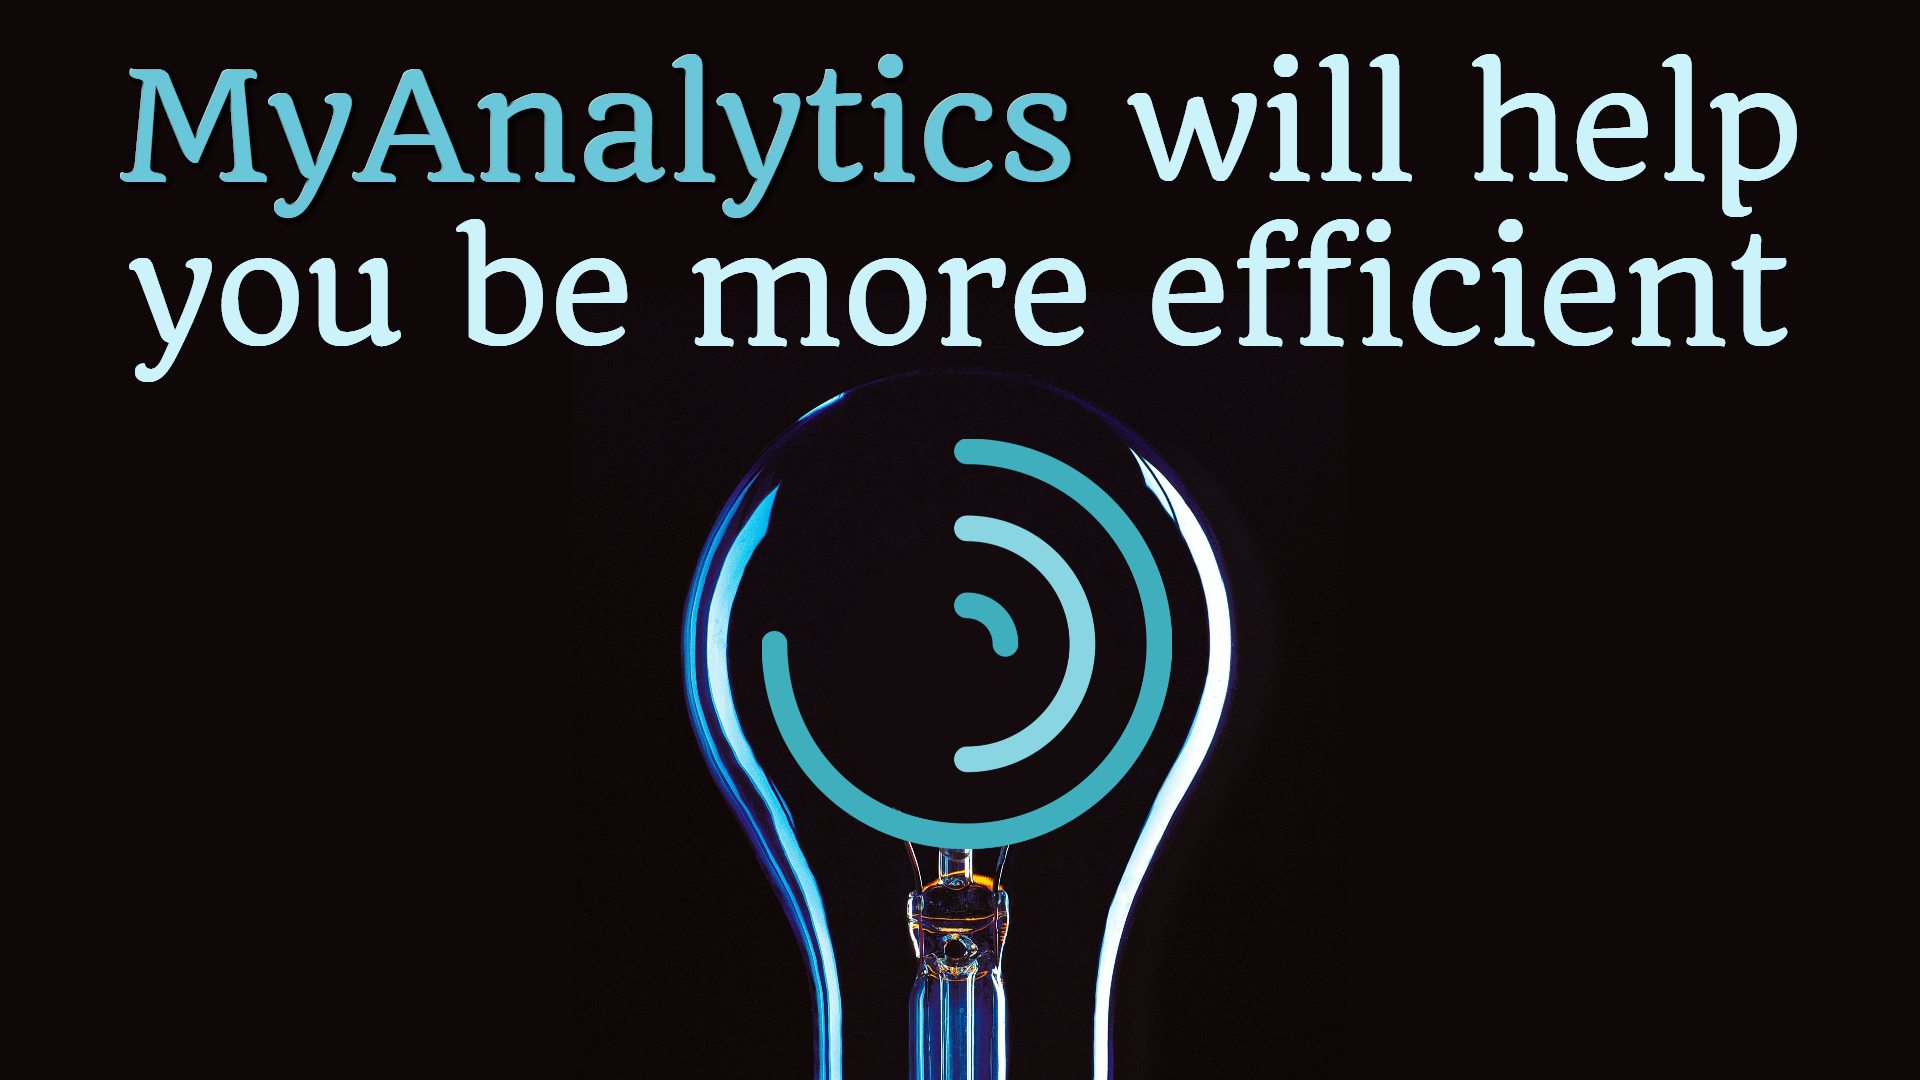 MyAnalytics will help you be more efficient